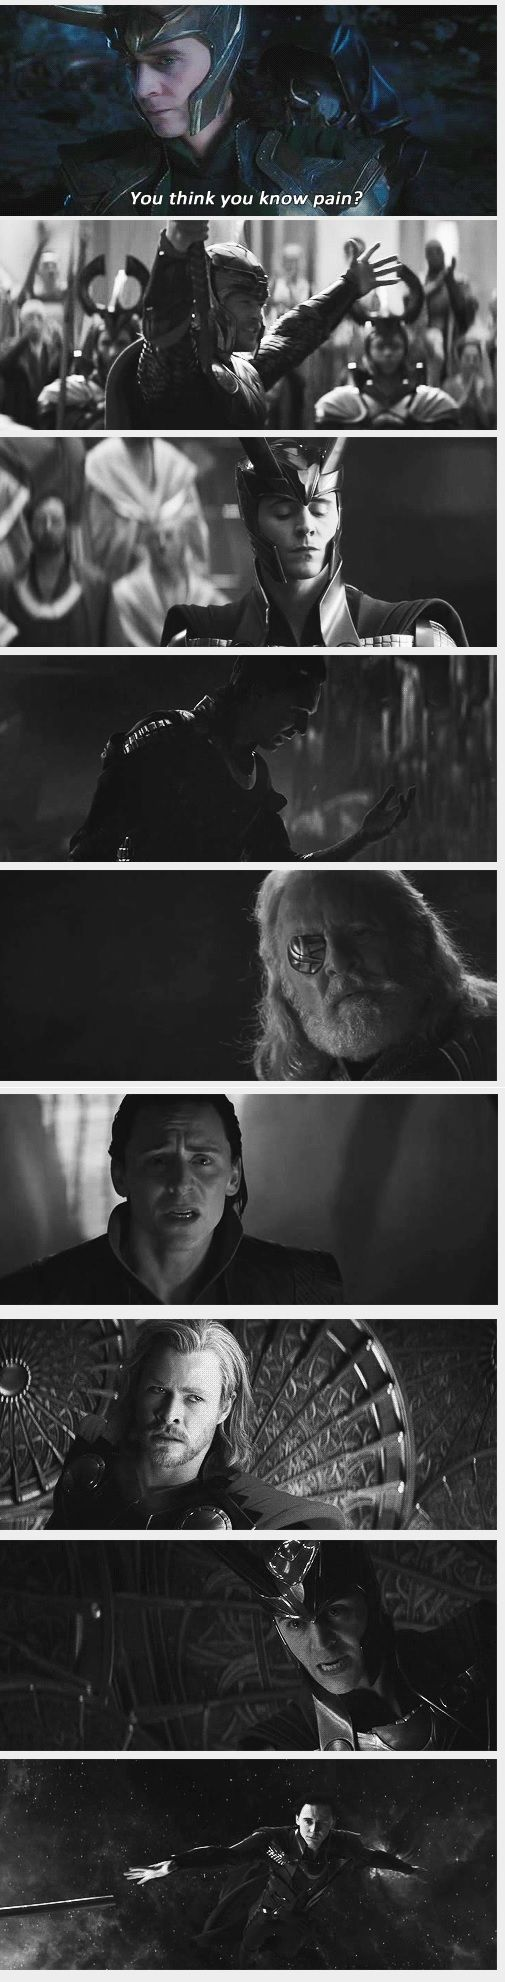 """He will make you long for something as sweet as pain..."" This photoset is really,really sad. It hurts."